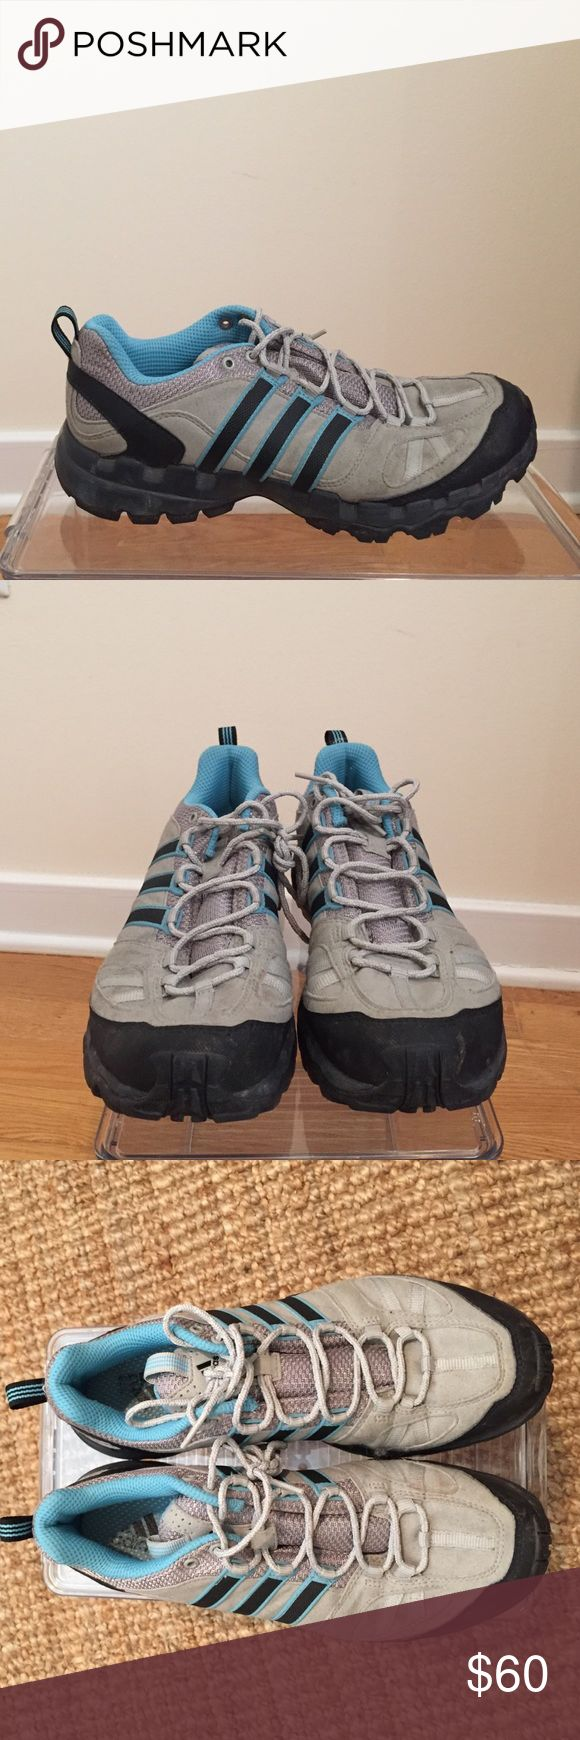 Adidas trail running / hiking  shoes Adidas women's train running shoe (also verge to for hiking). These are tough, light and stylish!! Worn twice (very good condition). Adidas Shoes Athletic Shoes